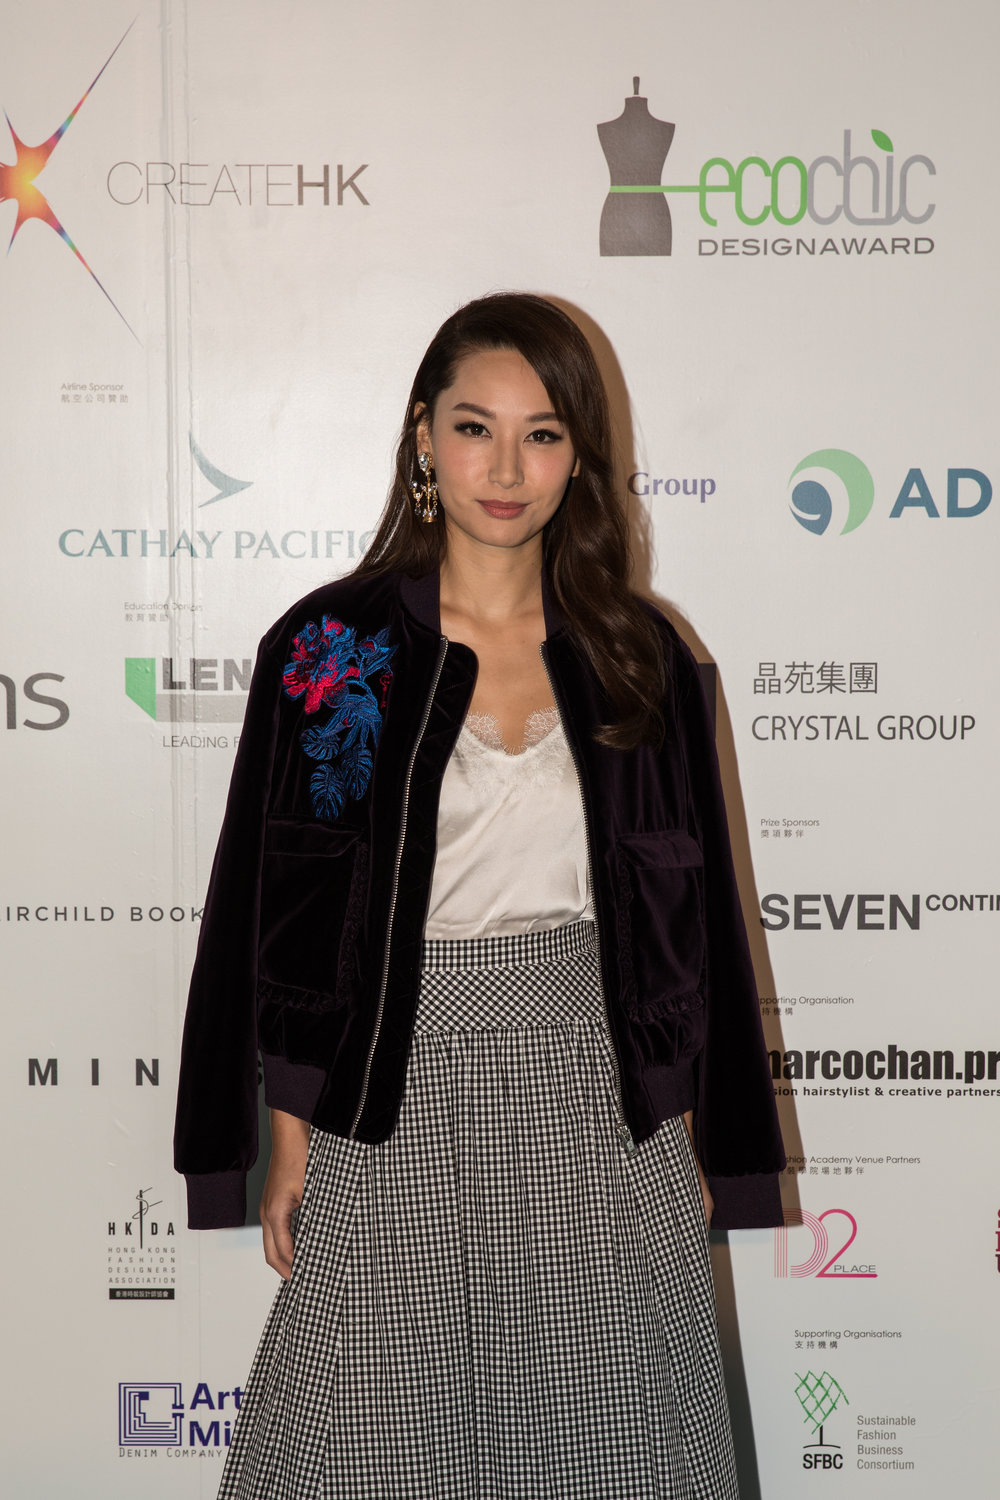 EcoChic Design Award 2017 ambassador Kate Tsui wears Shanghai Tang x EcoChic designed by Patrycja Guzik to attend the EcoChic Design Award 2017 Grand Final Show